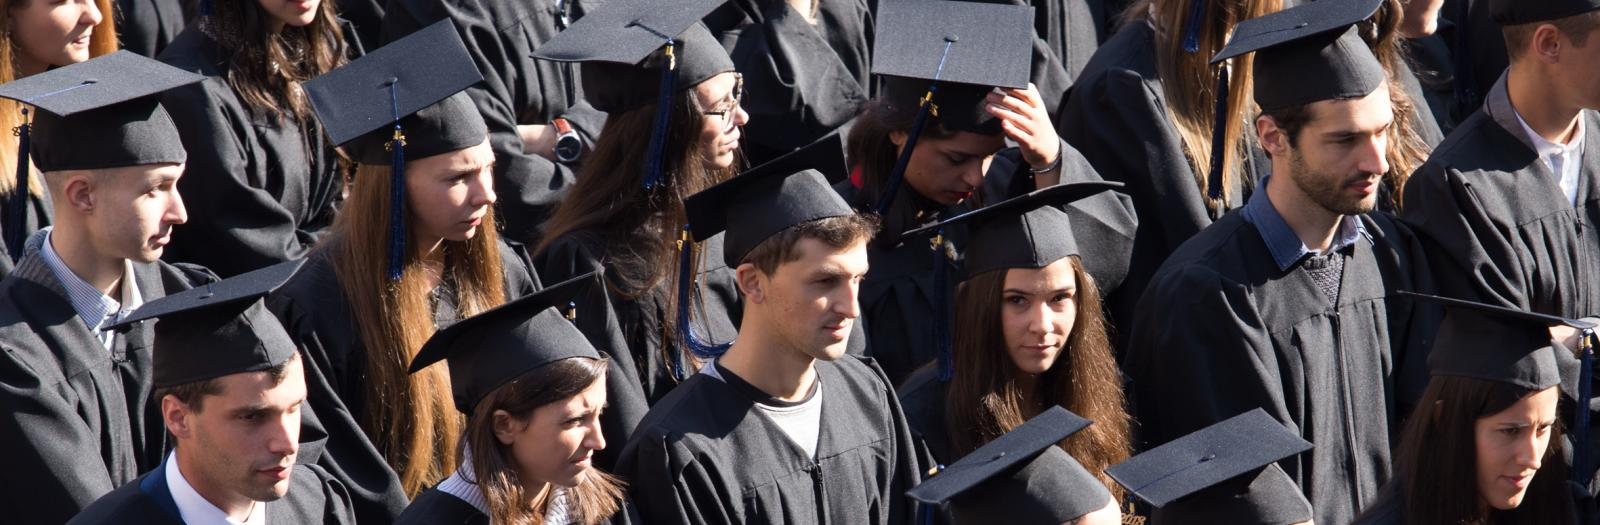 Students at Graduation Day 2018